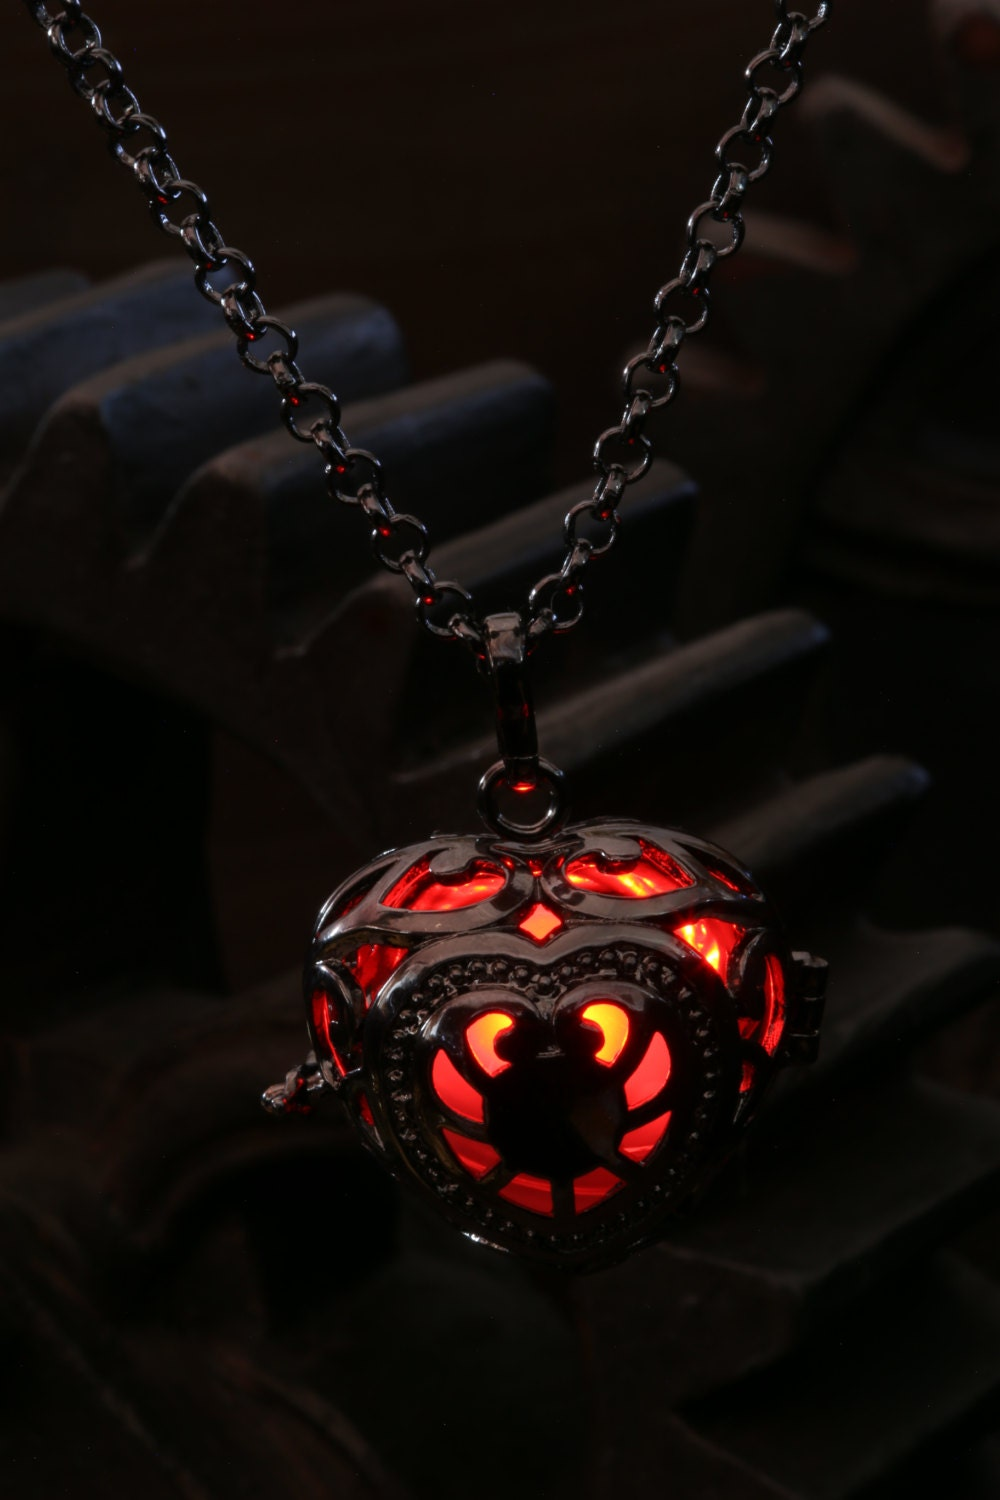 chain boy glowing necklace men rinhoo item from pendant jewelry in glow necklaces dark the for steel accessories gift zombie shadow stainless steampunk fire